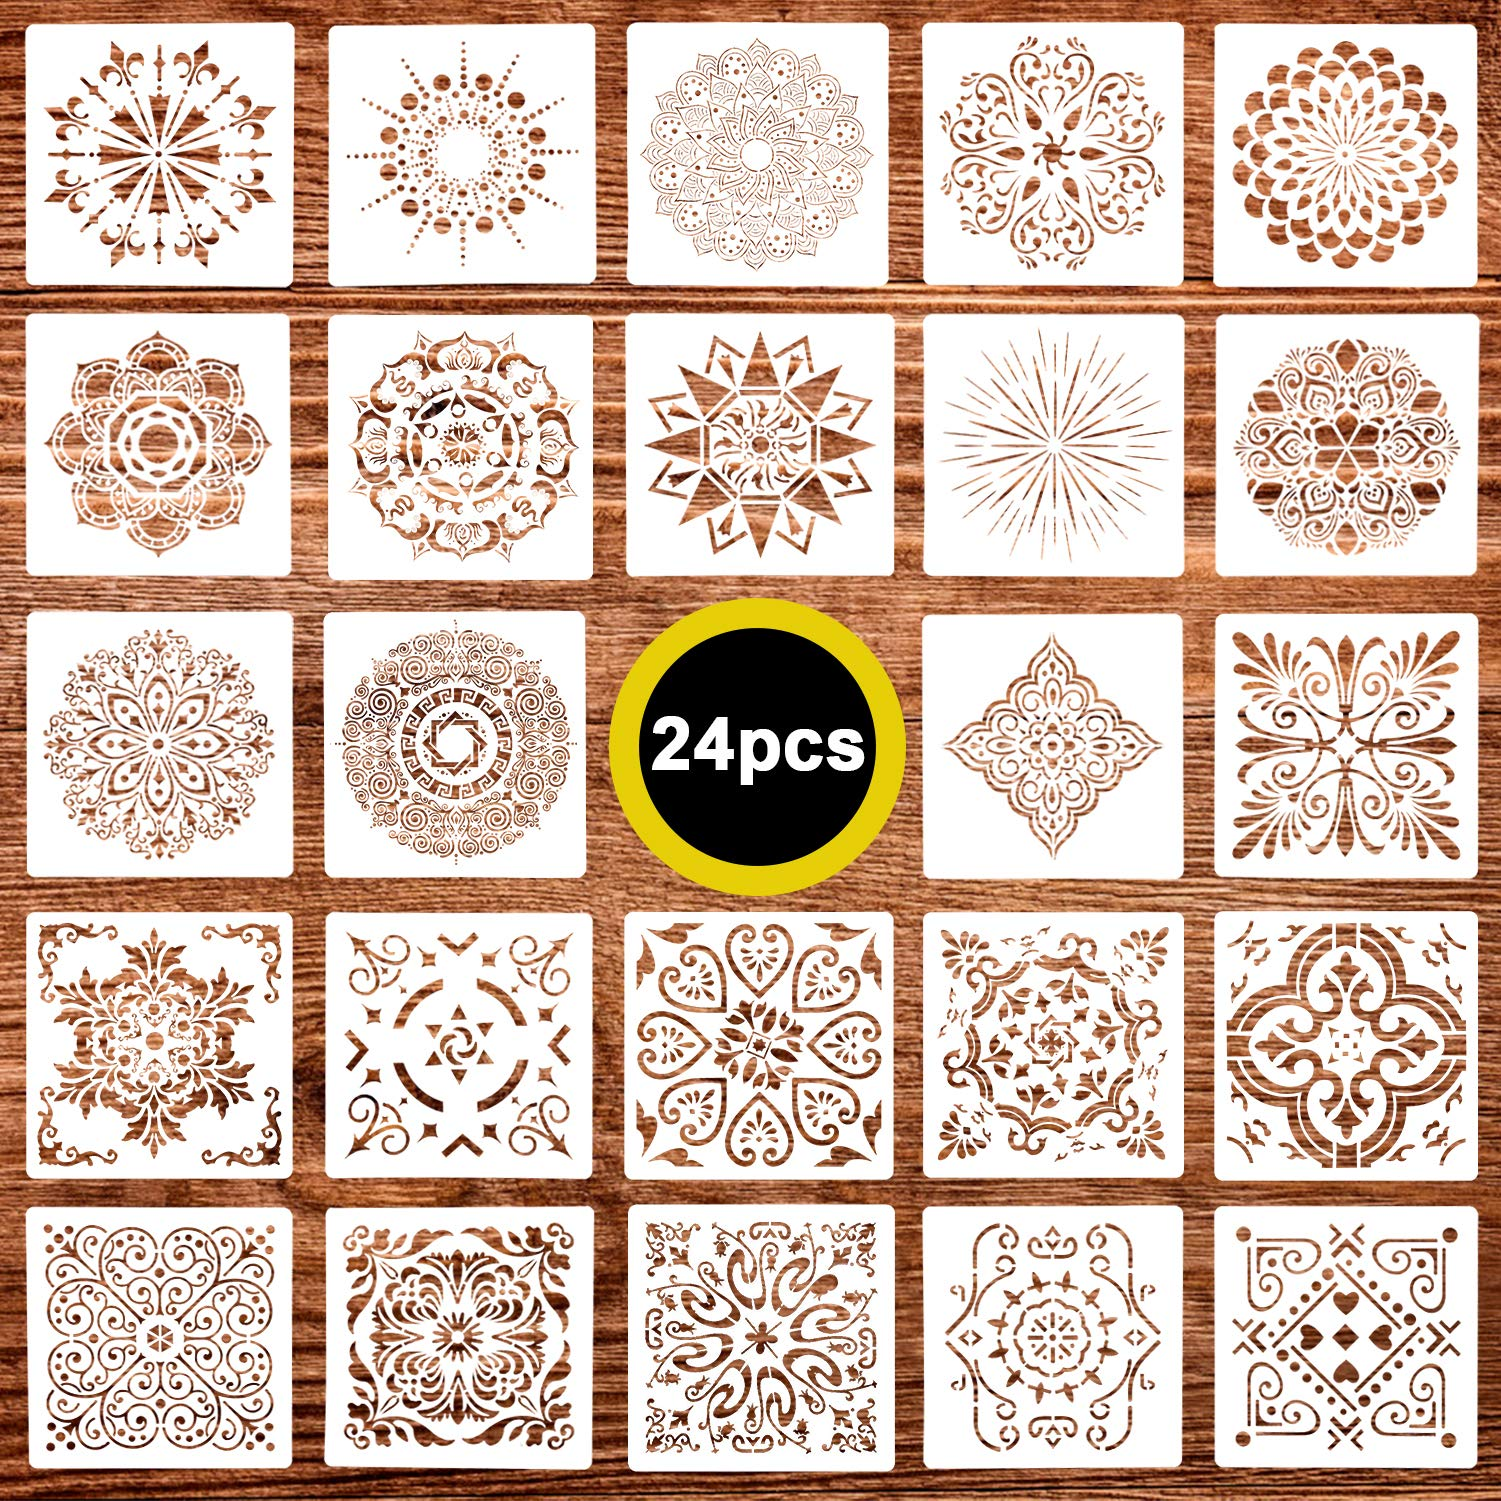 24 Pack (6x6 Inch) Painting Drawing Stencils Mandala Template for DIY Rock Painting Art Projects, Reuseable by Juome